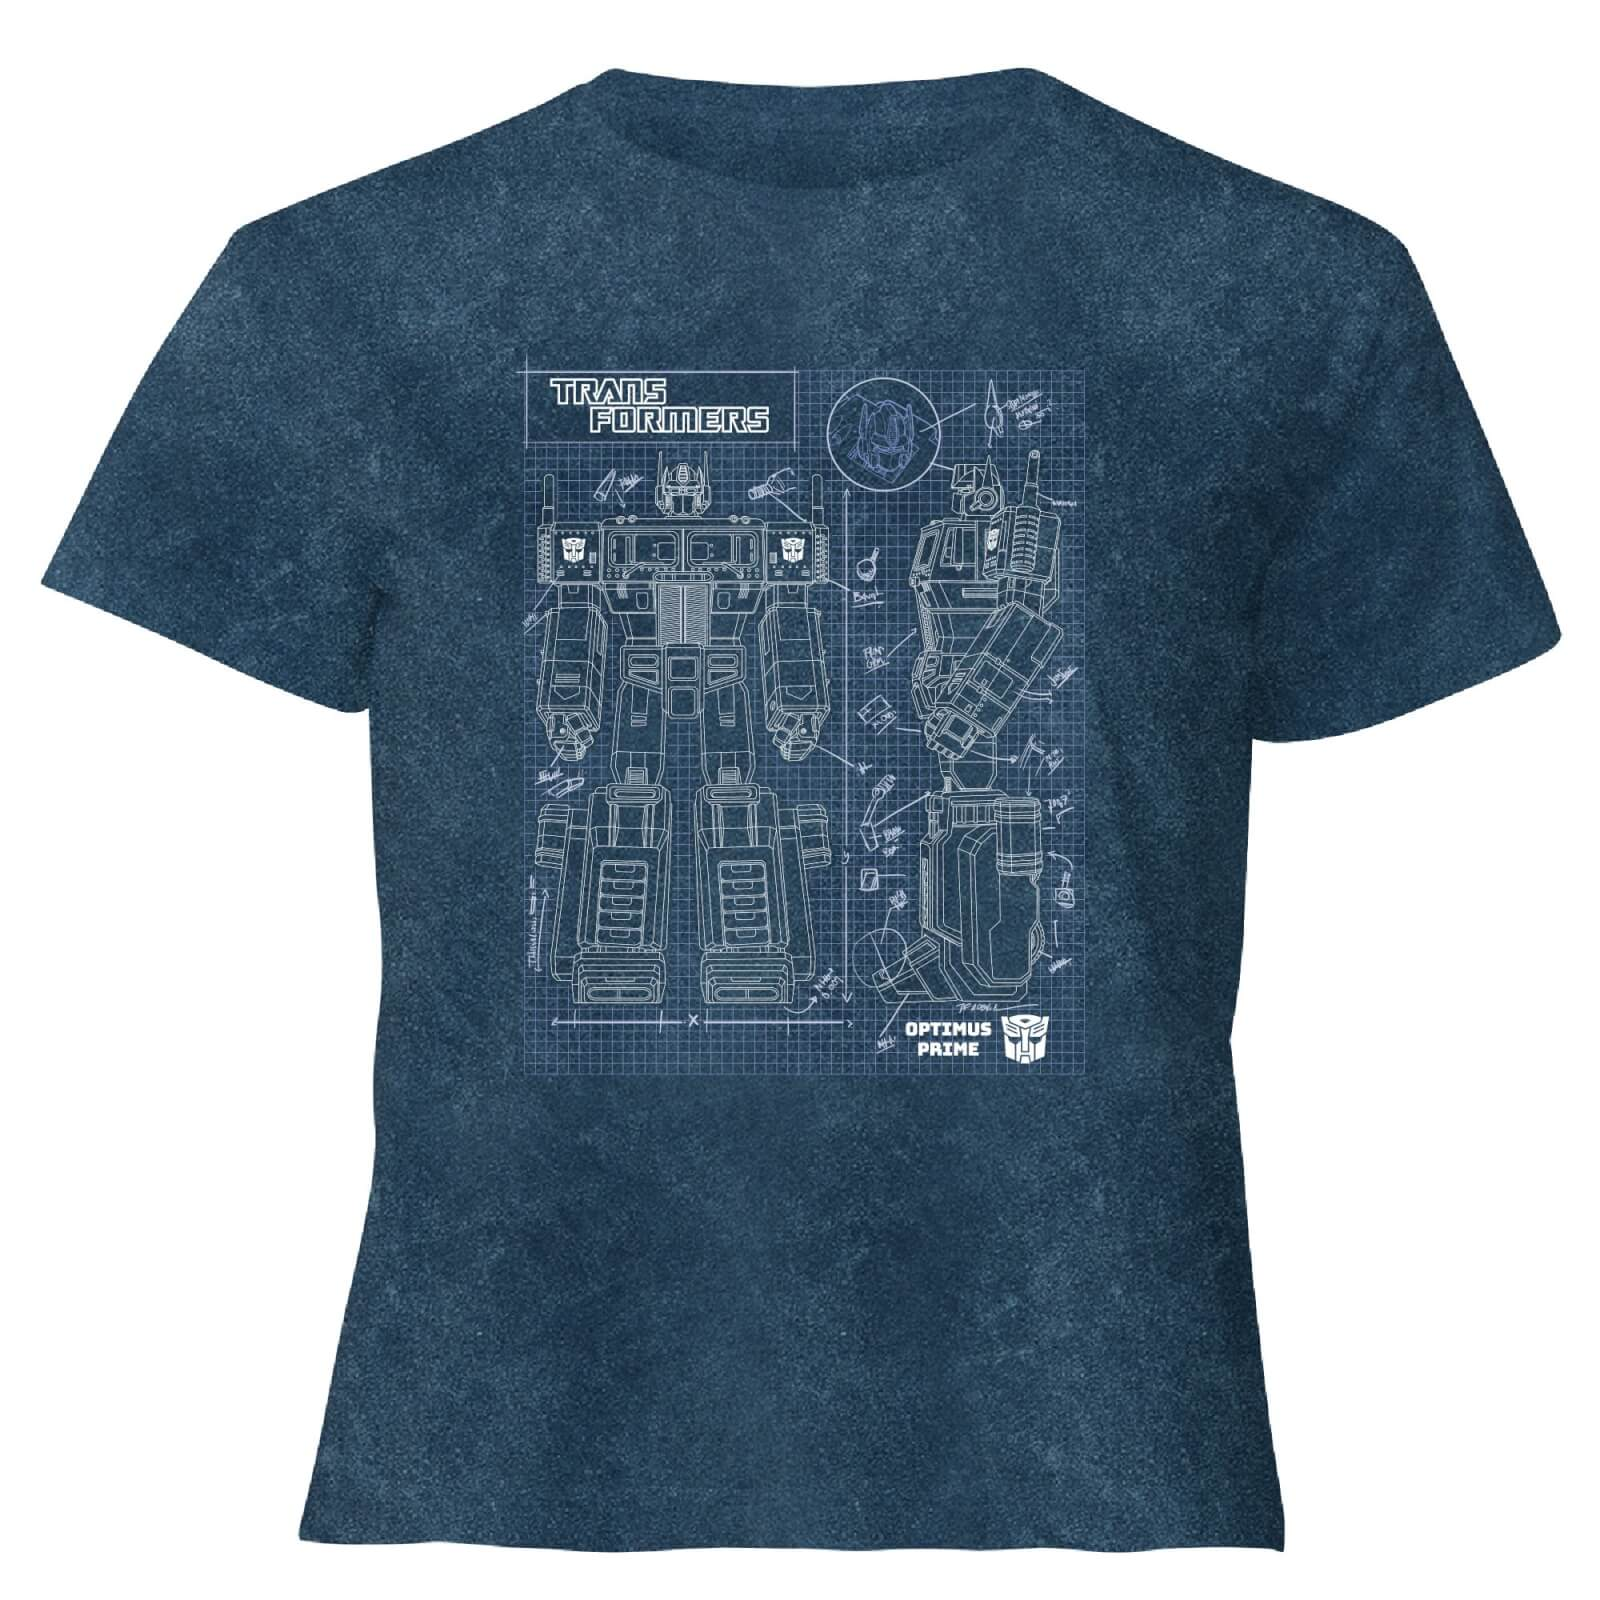 Transformers Optimus Prime Schematic   Womens Cropped T Shirt   Navy Acid Wash   XXL   Navy Acid Wash